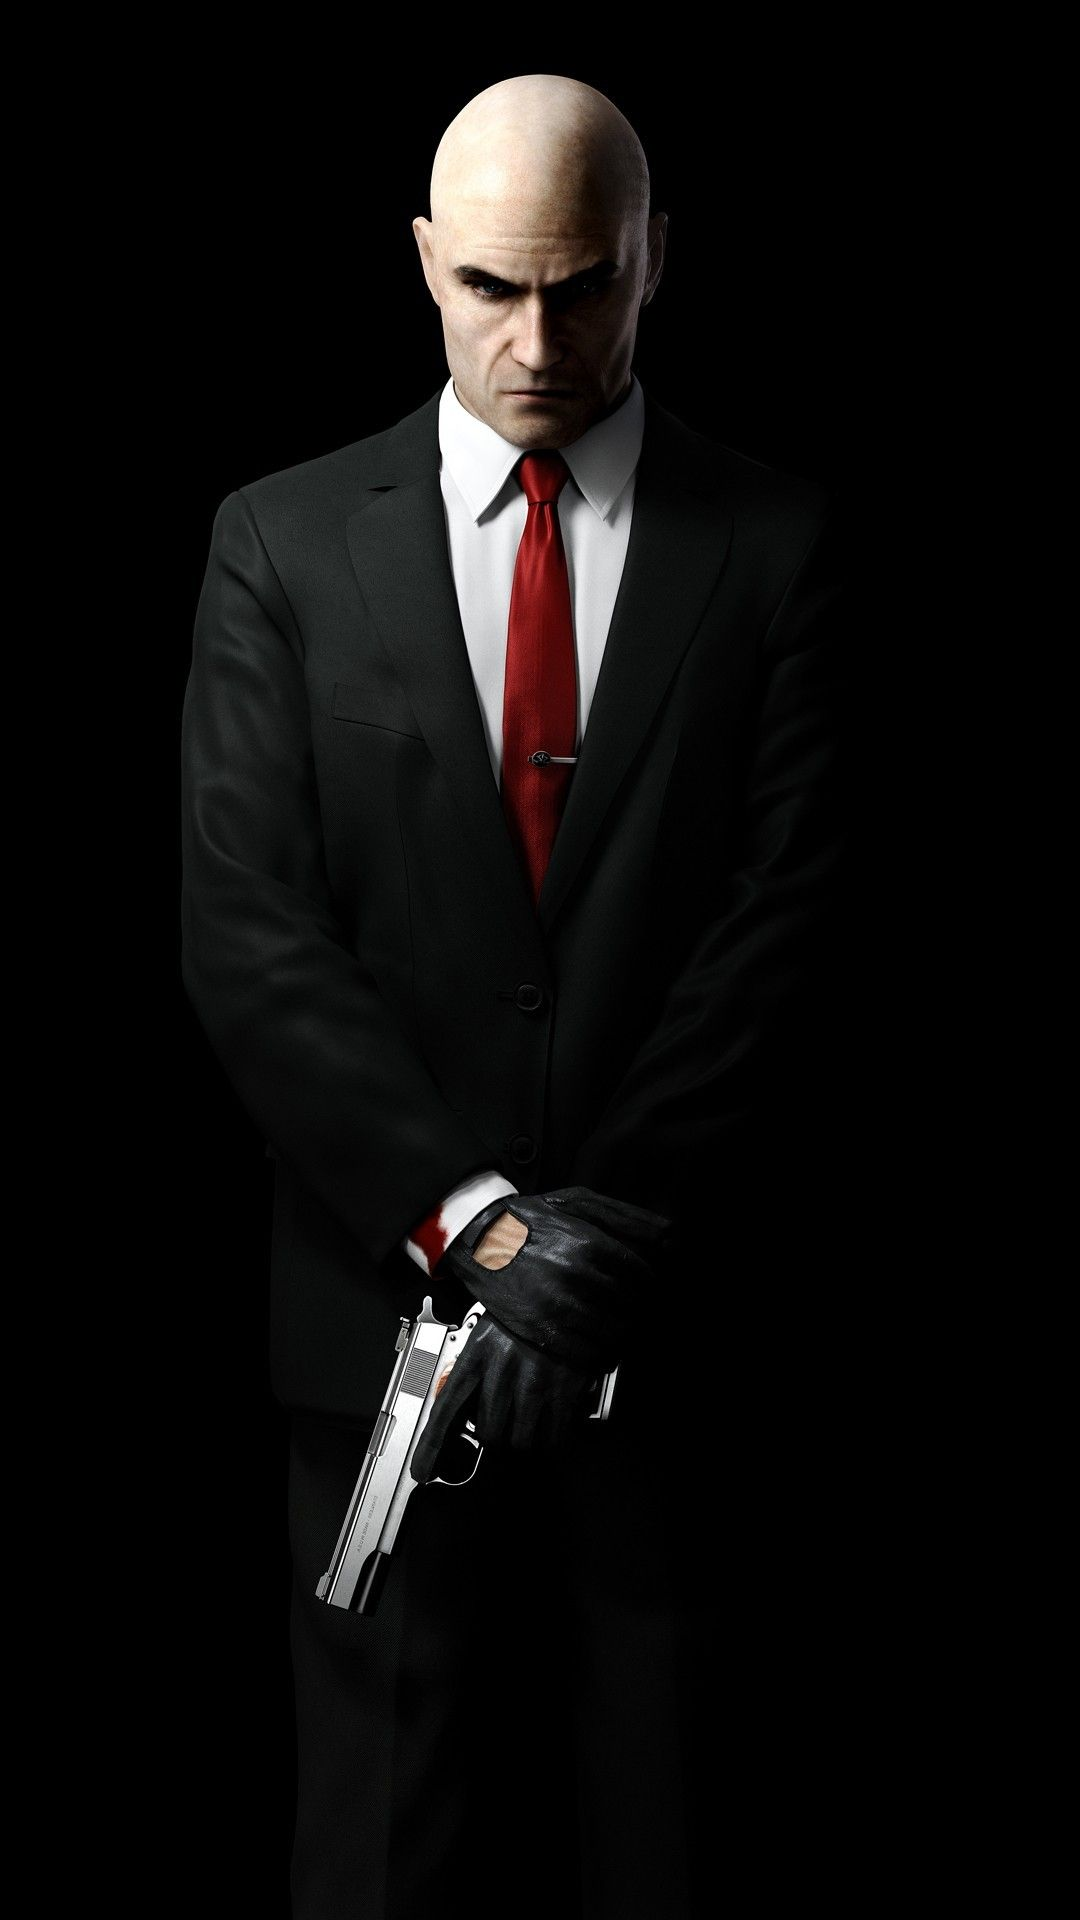 Mobile Phone 240x320 Hitman Wallpapers Hd Desktop Backgrounds Phone Wallpaper For Men Hitman Phone Wallpaper